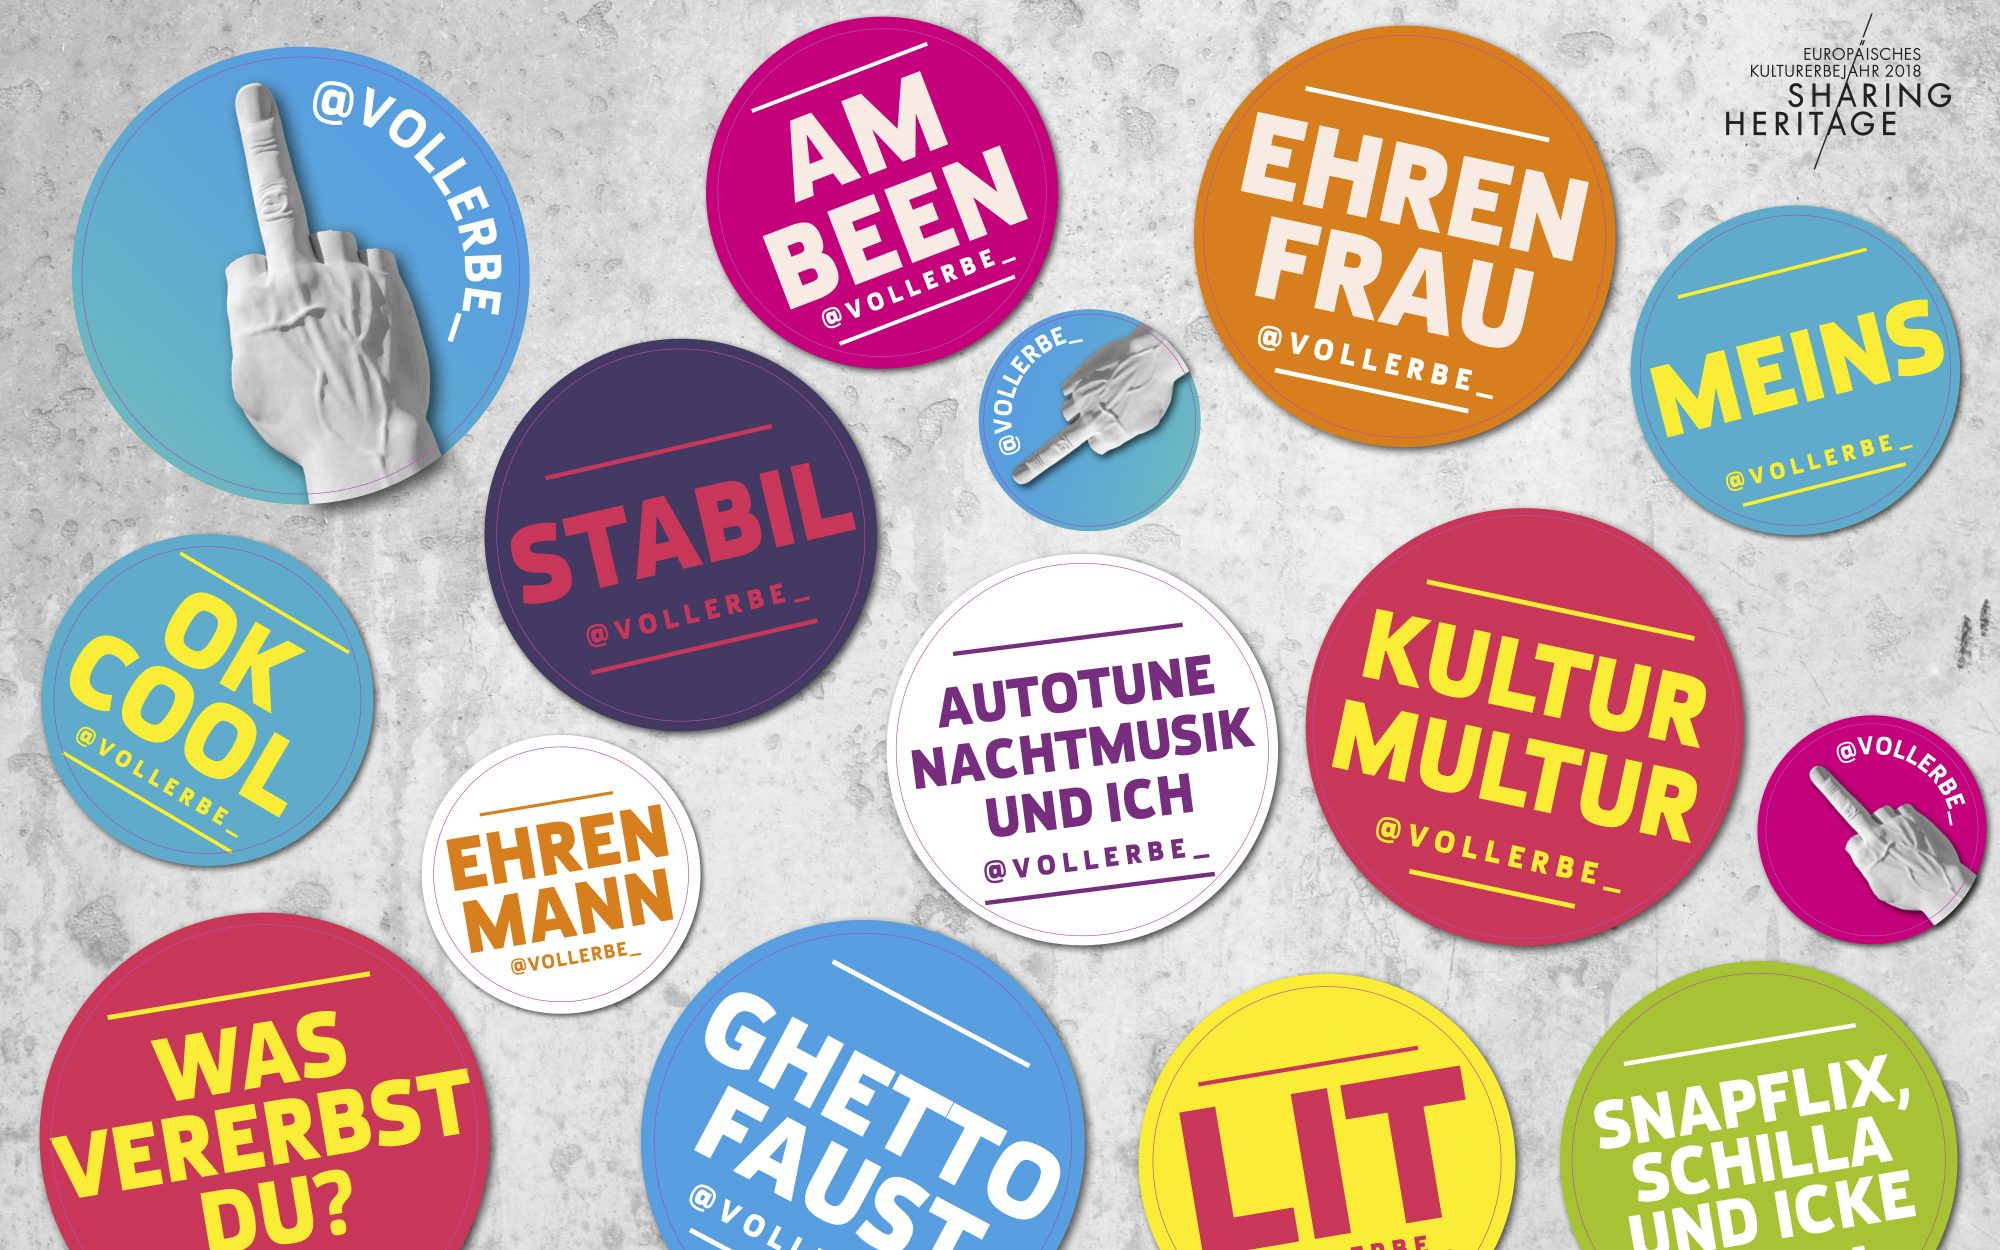 GRACO-Sharing-Heritage-Aufkleberbogen-Claims